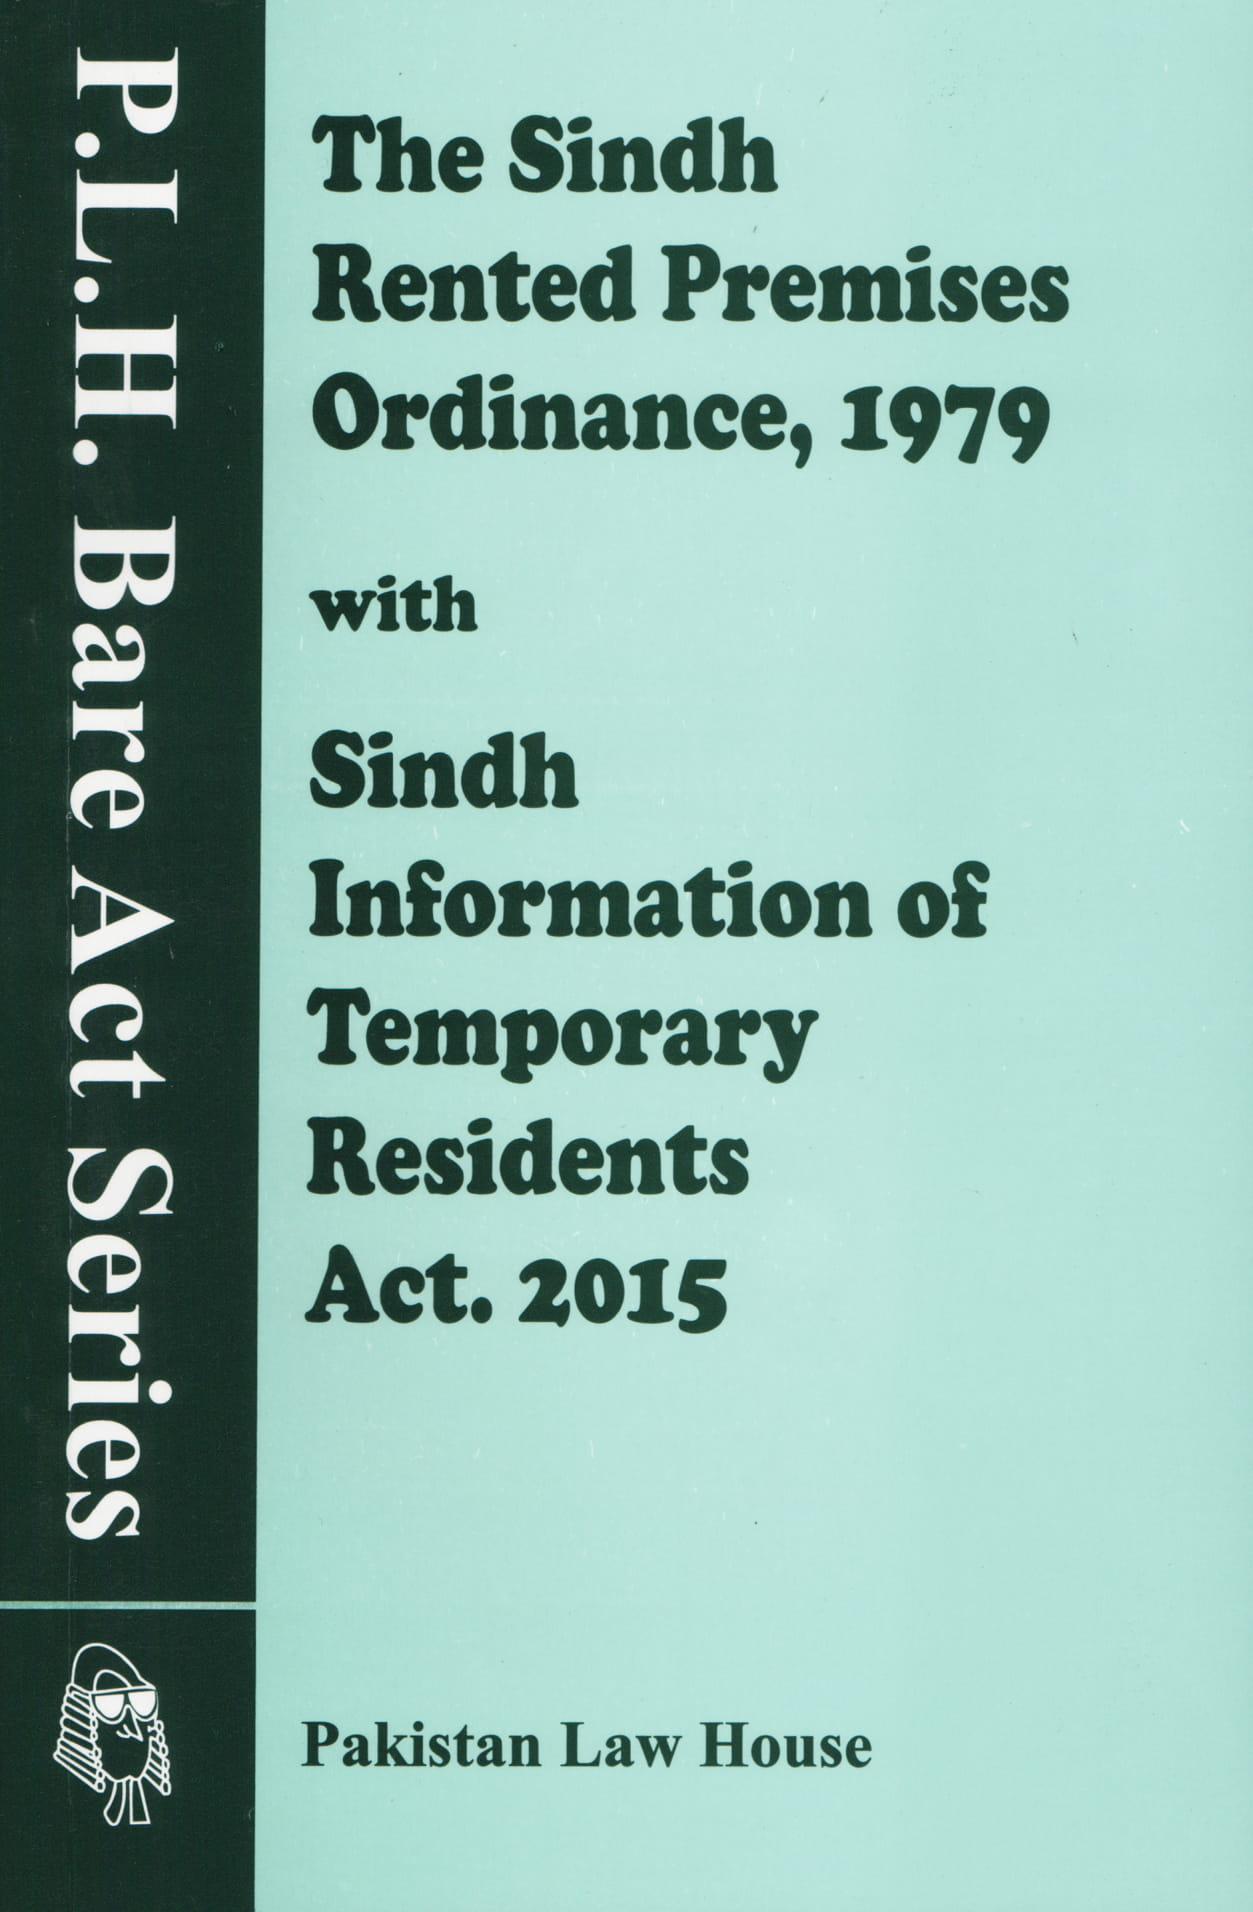 The Sindh Rented Premises Ordinance, 1979